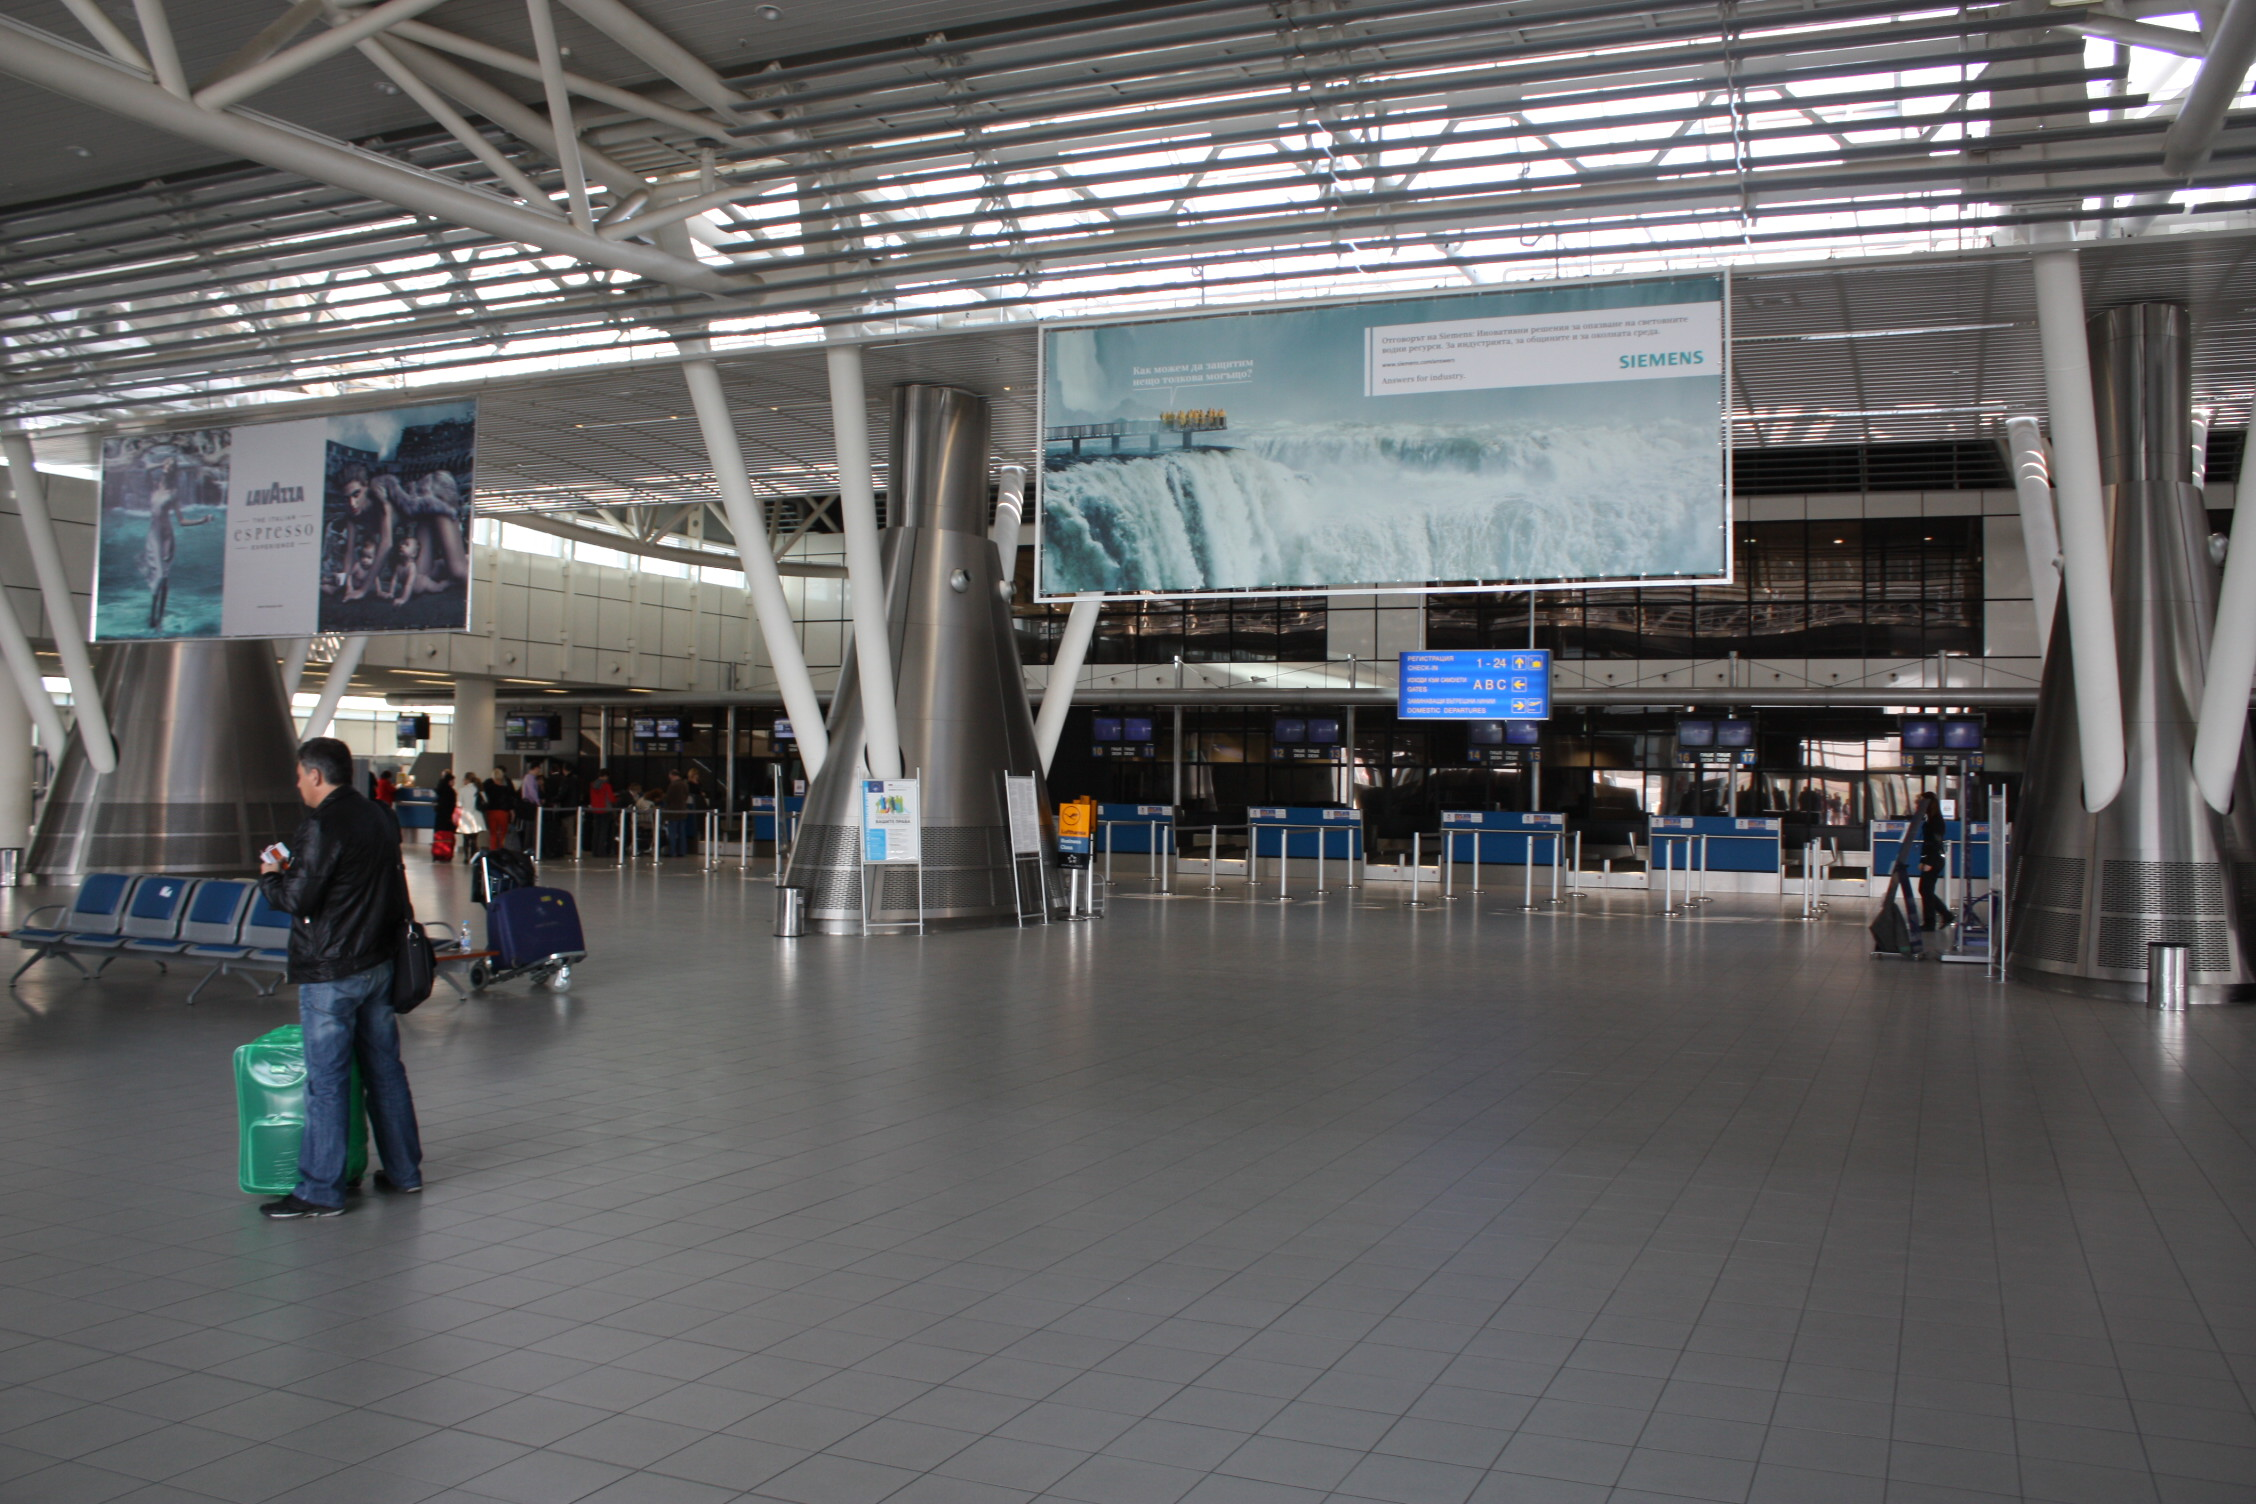 File:Inside Sofia Airport 20090409 024.JPG